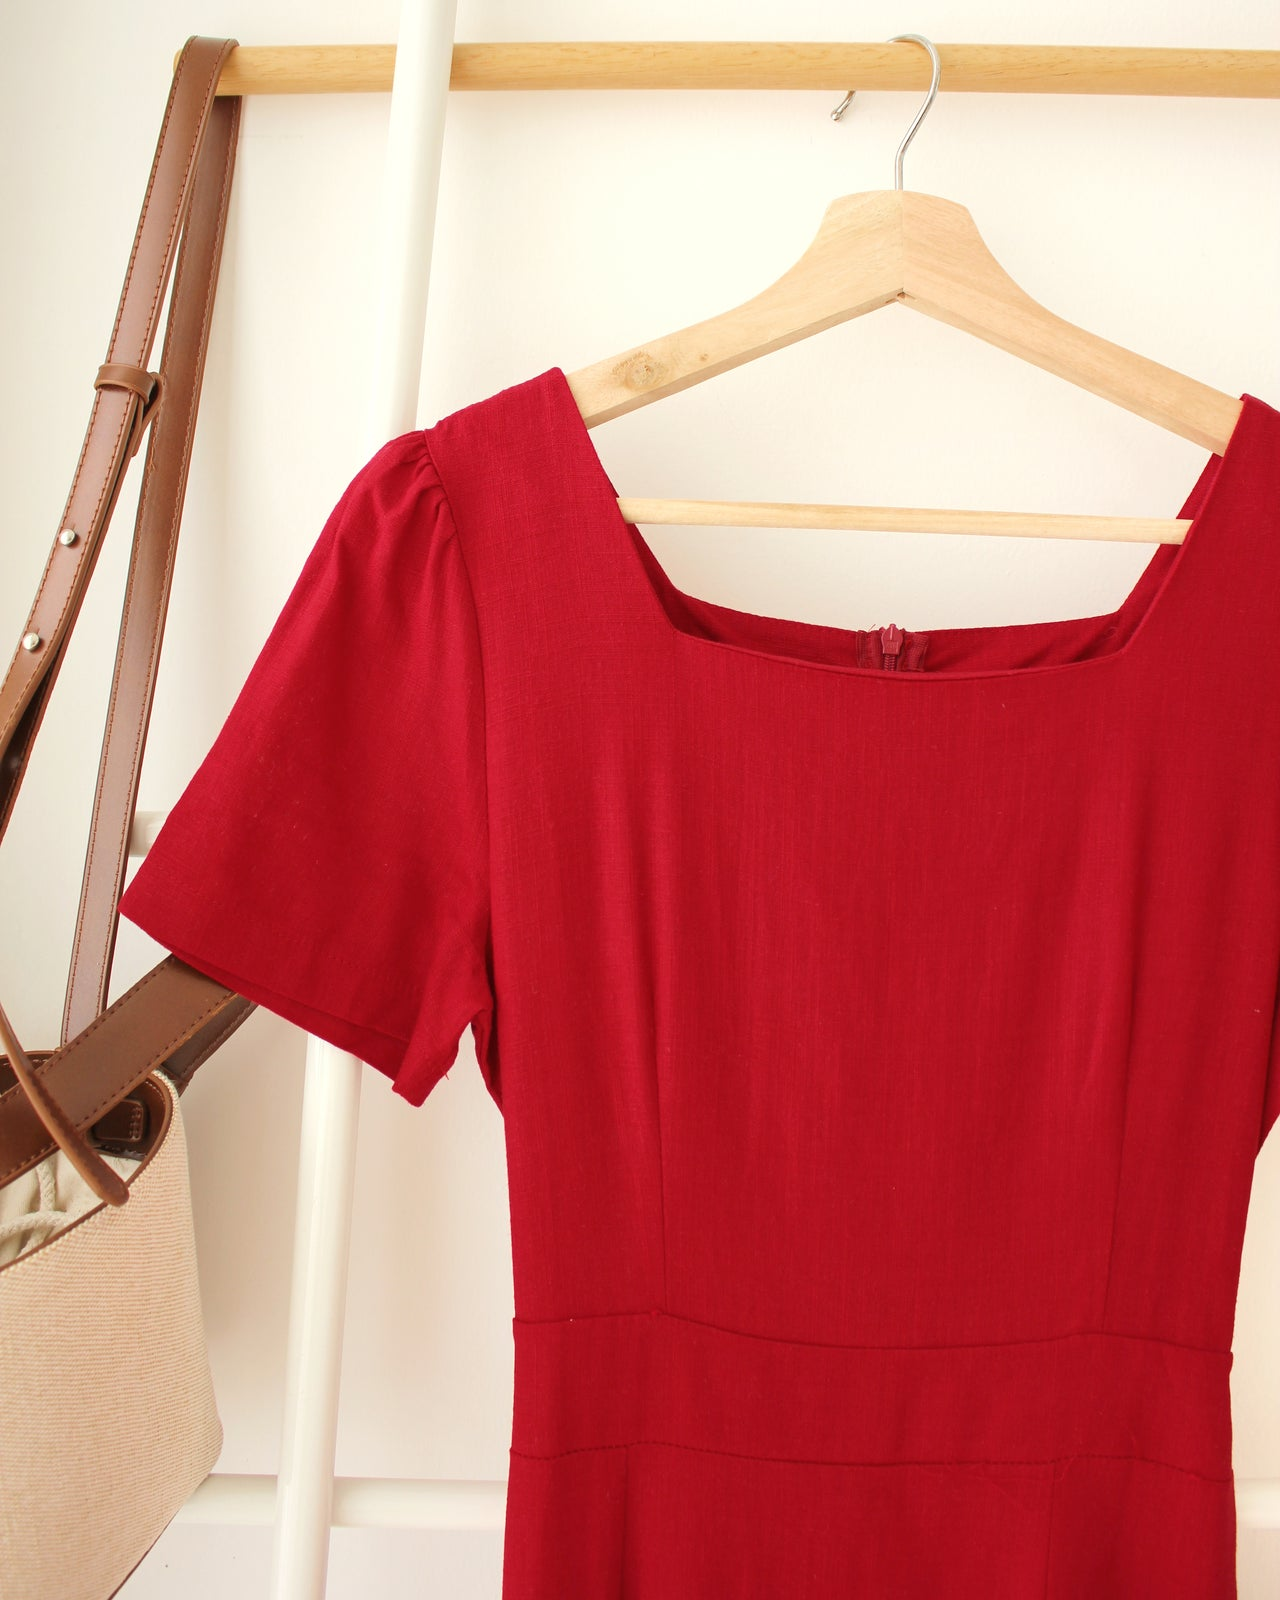 Korean Maroon Dress - LovelyMadness Clothing Online Fashion Malaysia